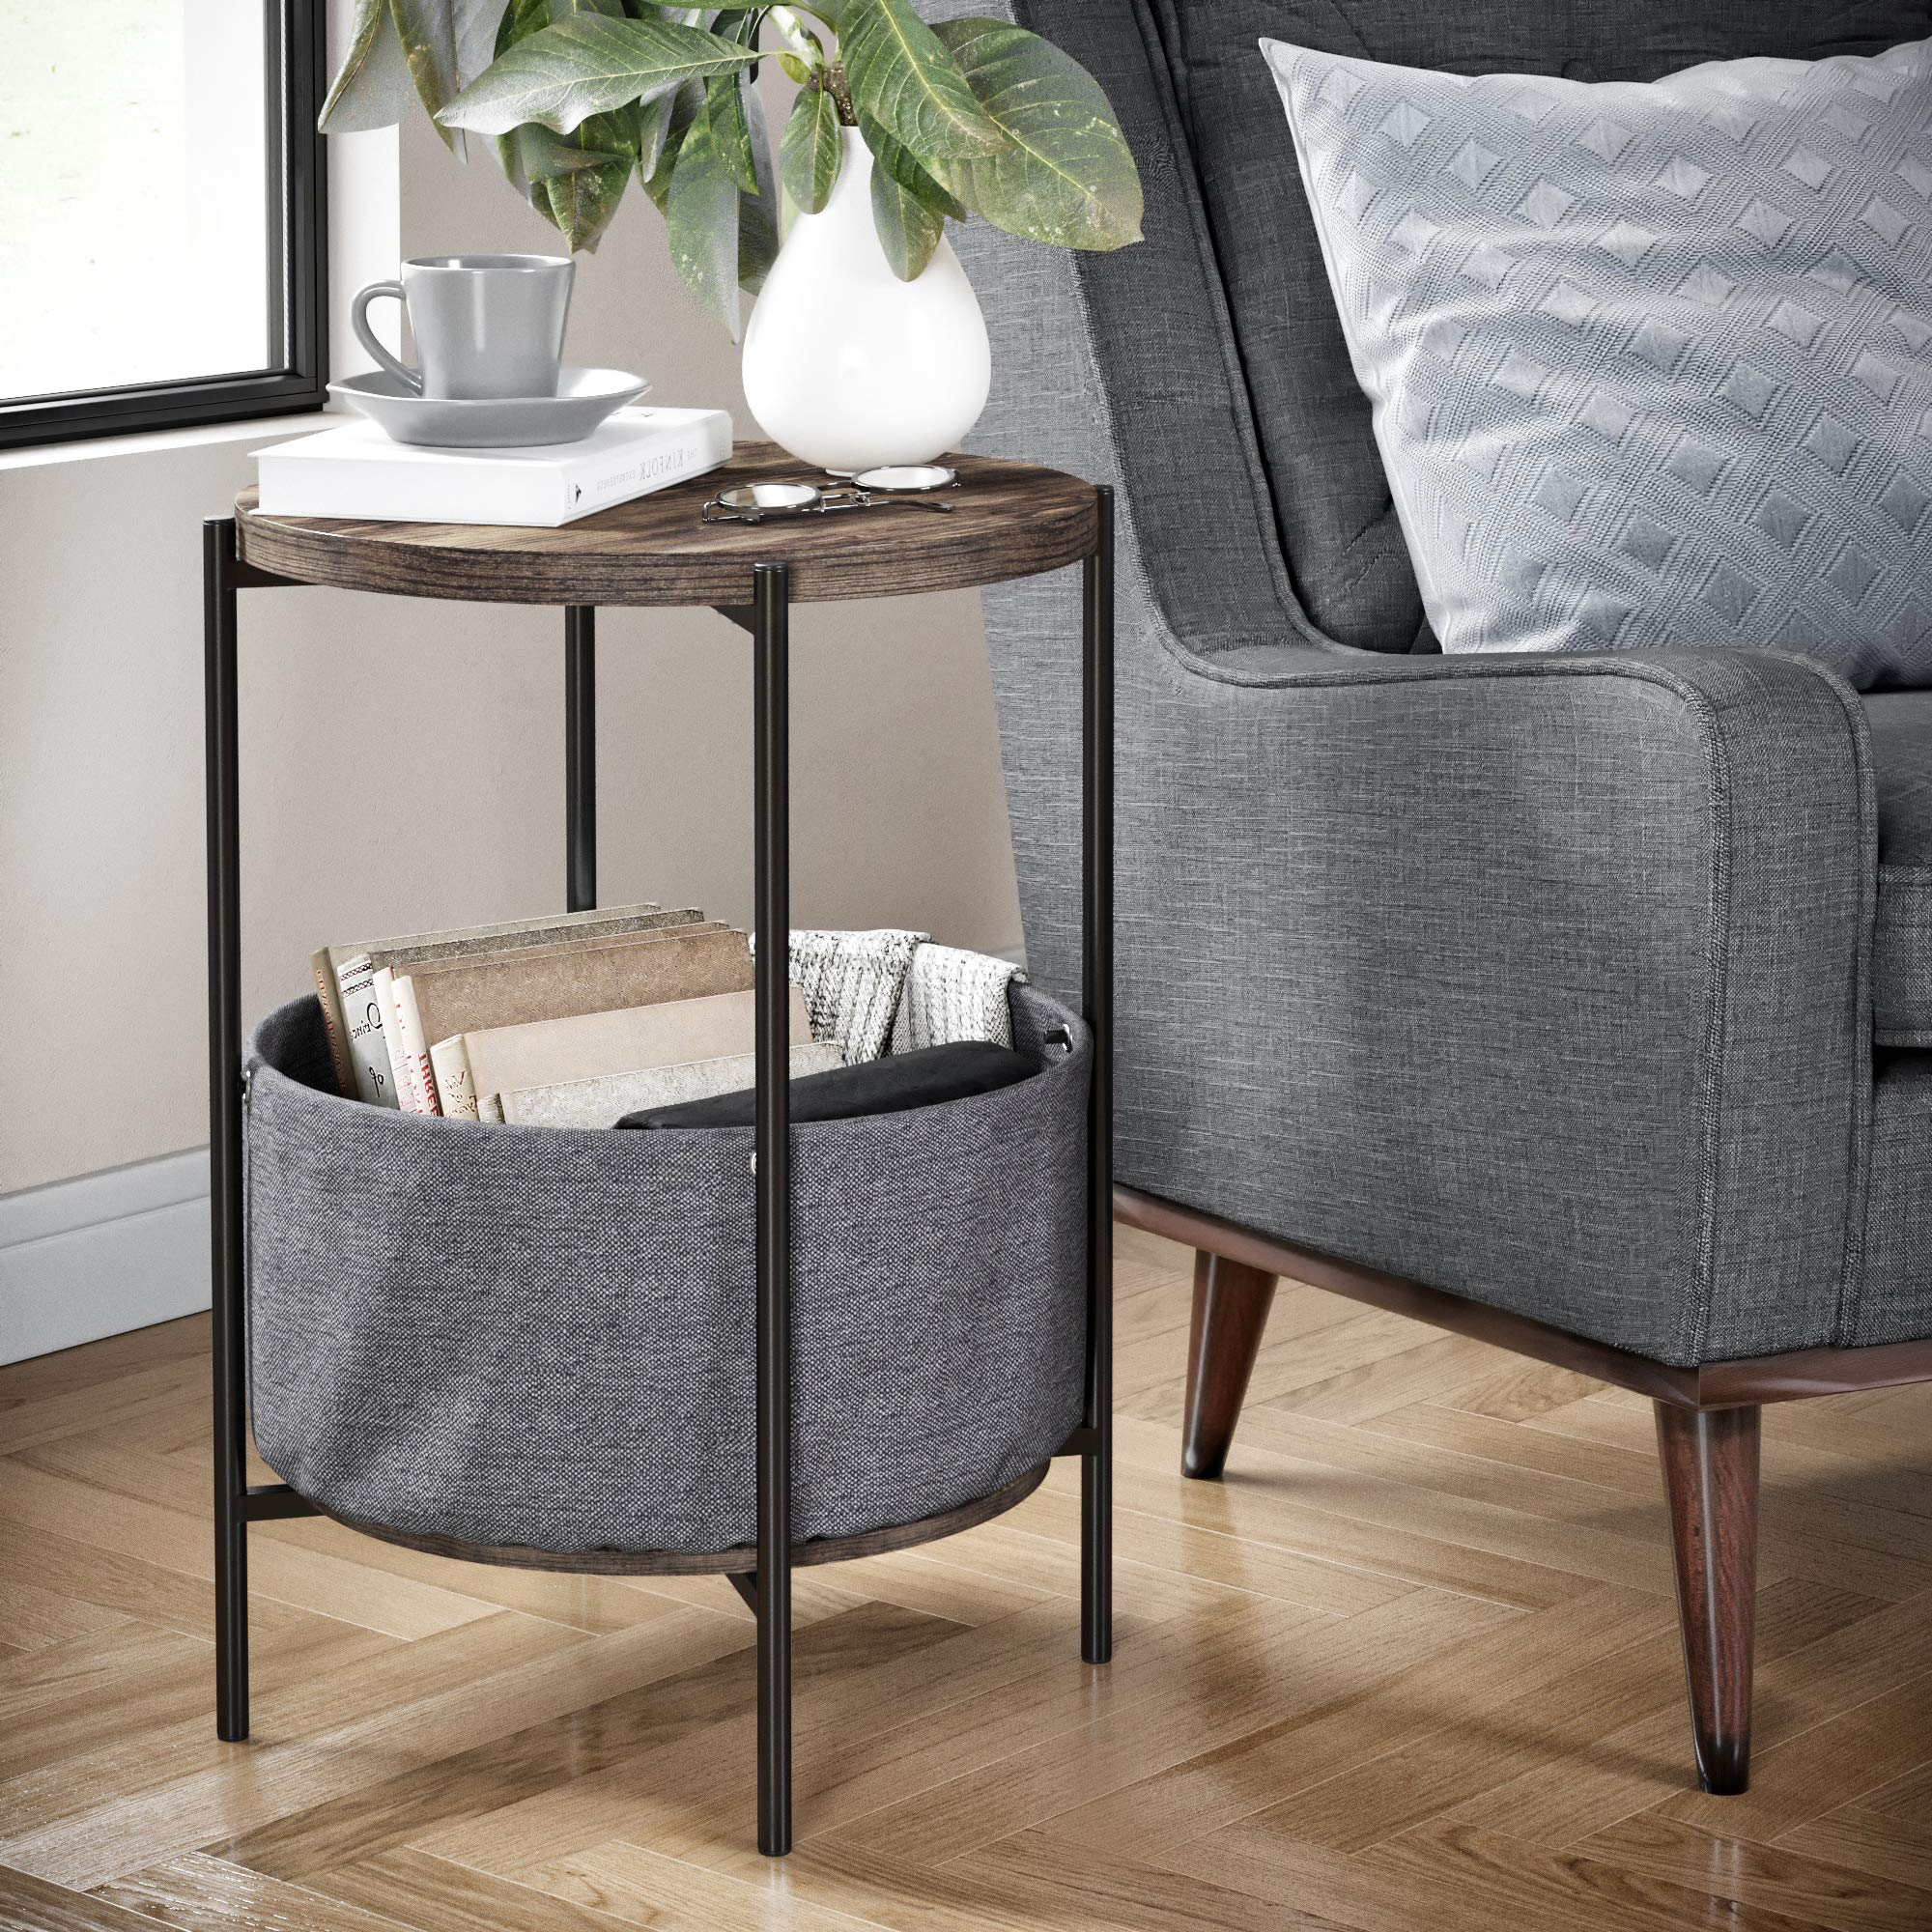 Nathan James 32201 Oraa Round Wood Side Table with Fabric Storage, Nutmeg Brown/Black by Nathan James